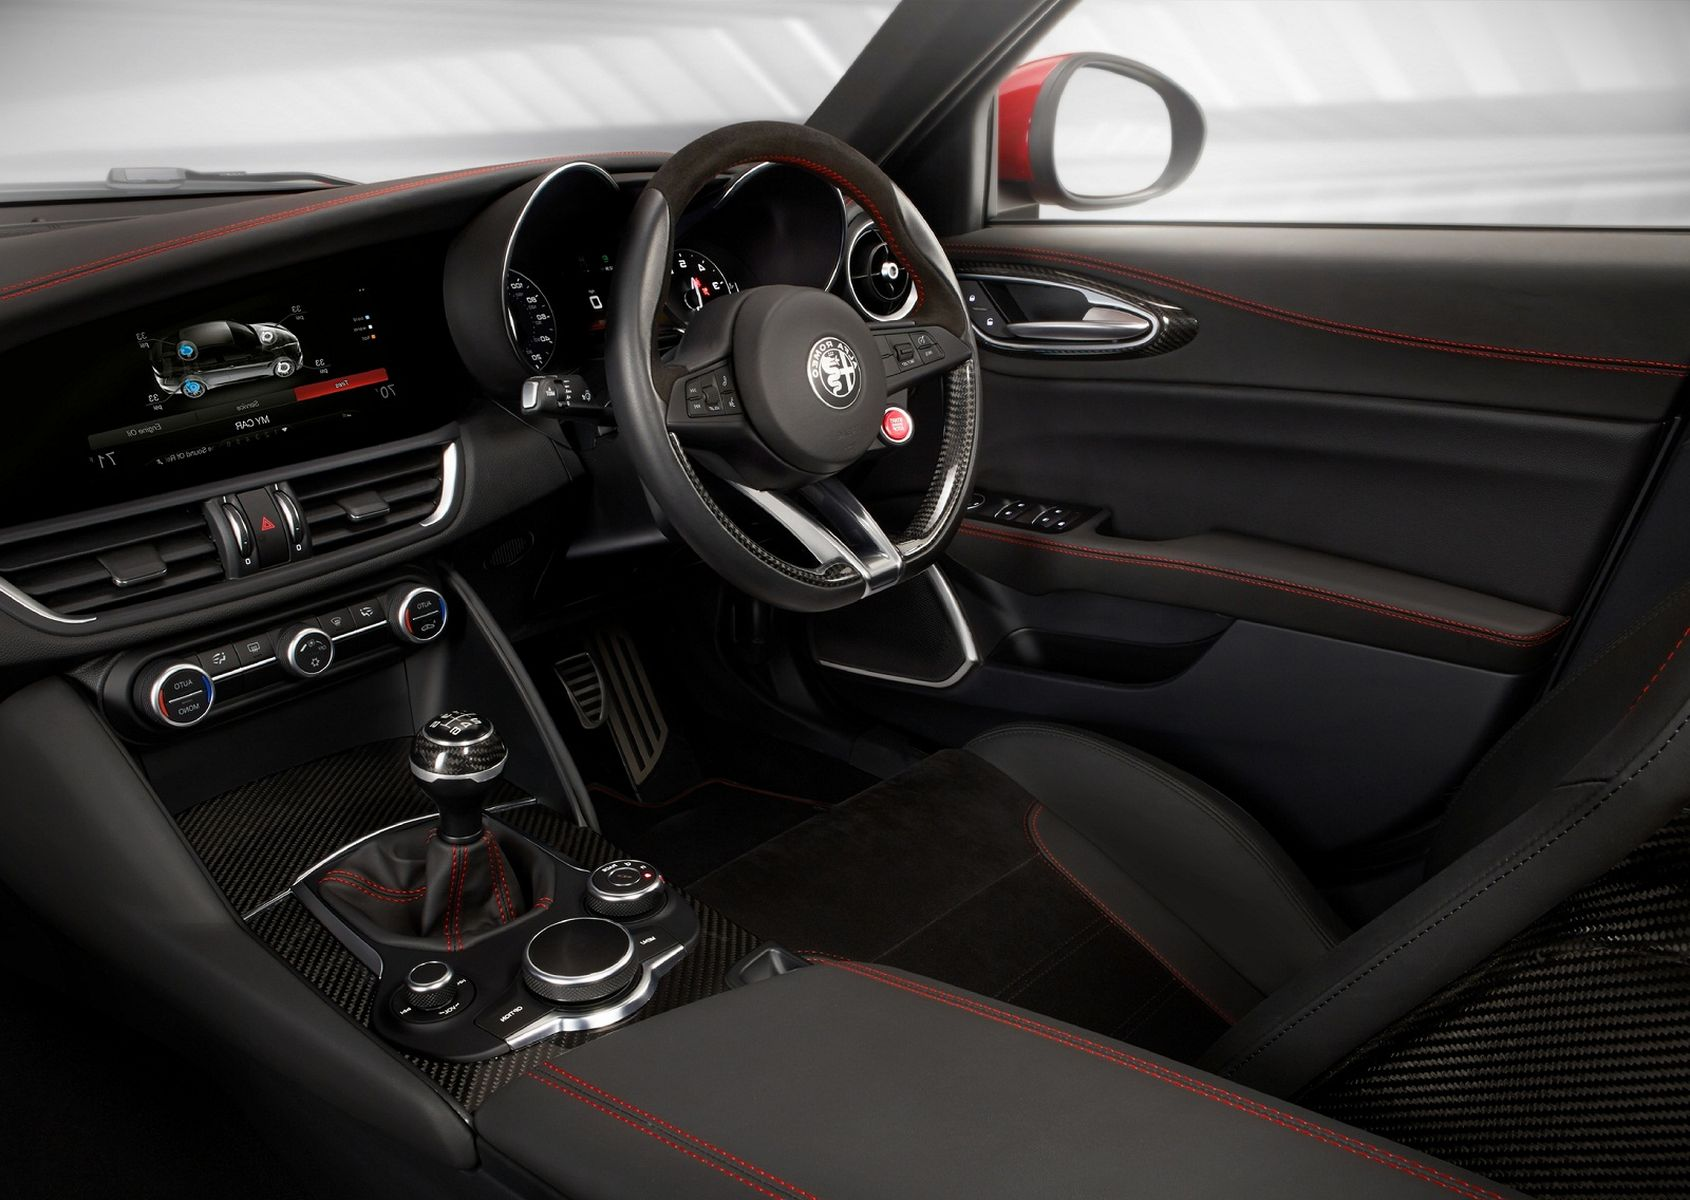 Alfa Romeo Stelvio 2017 interior photos